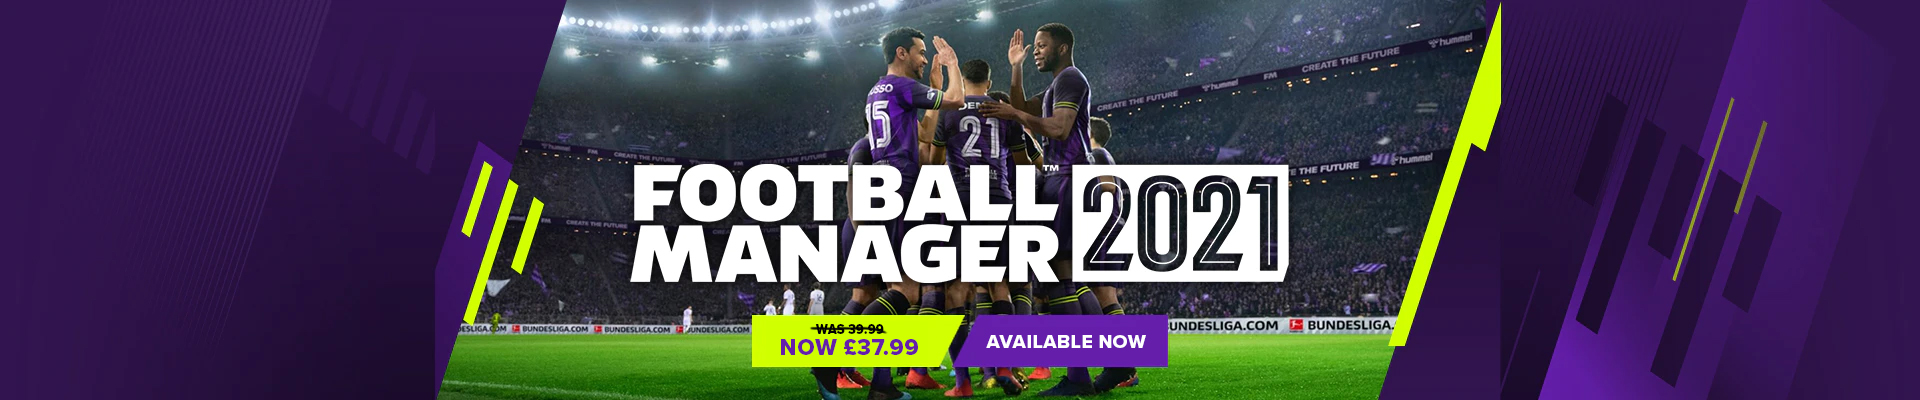 Football Manager 2021 Banner